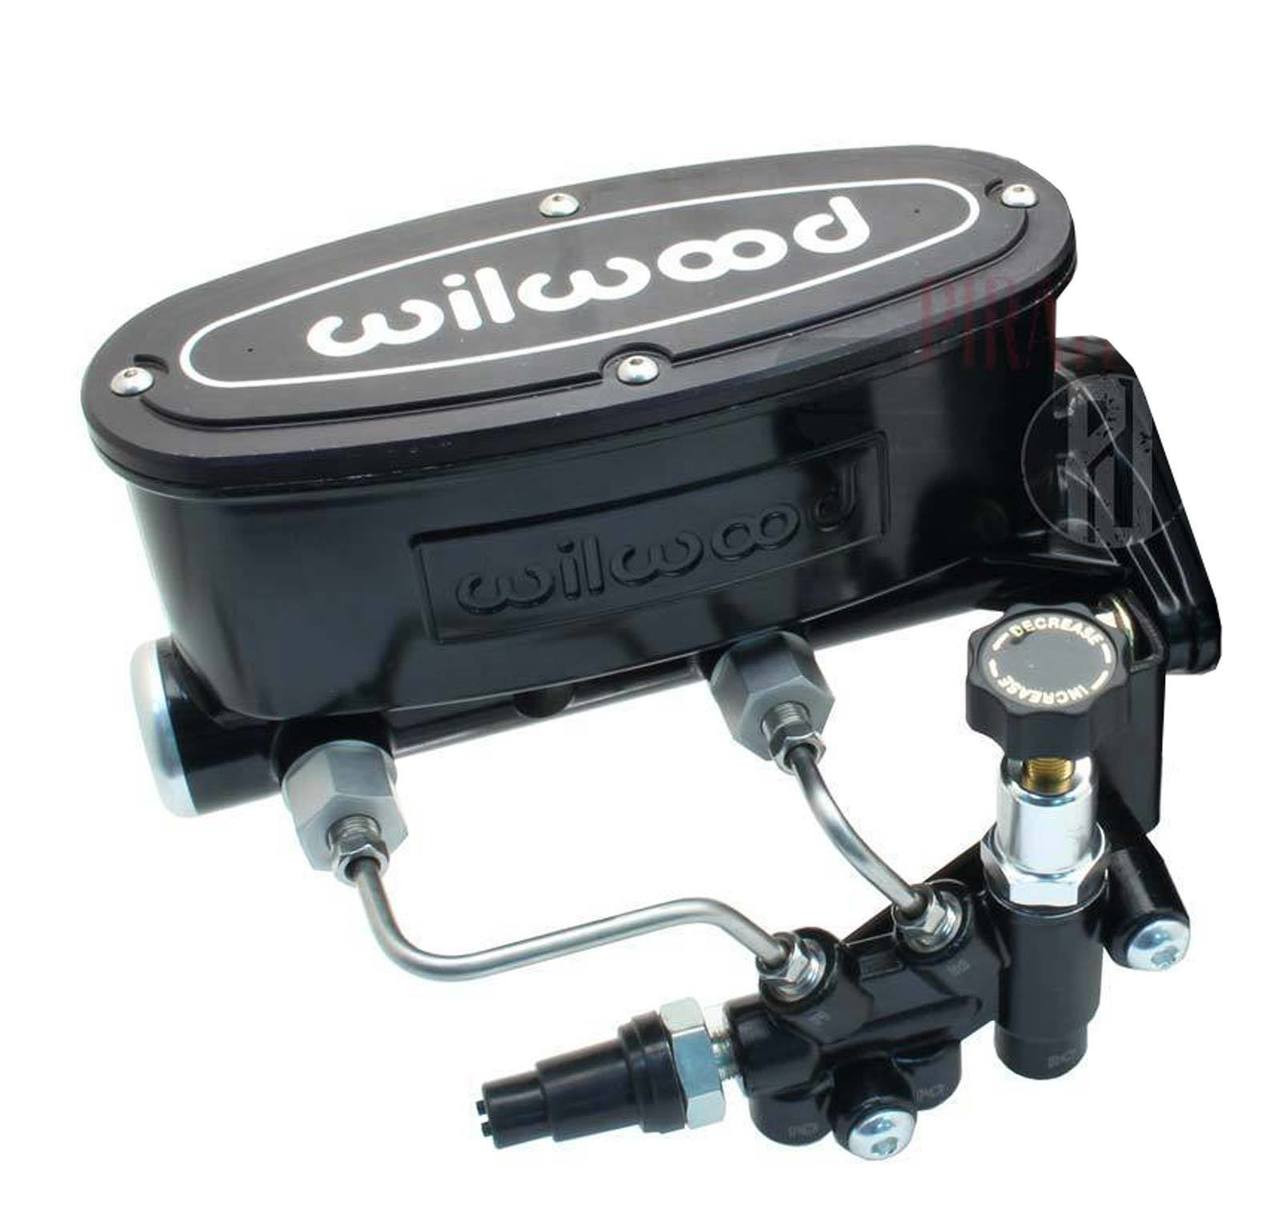 Wilwood 4 Wheel Disc Brake Master Cylinder & Adjustable Proportioning Valve